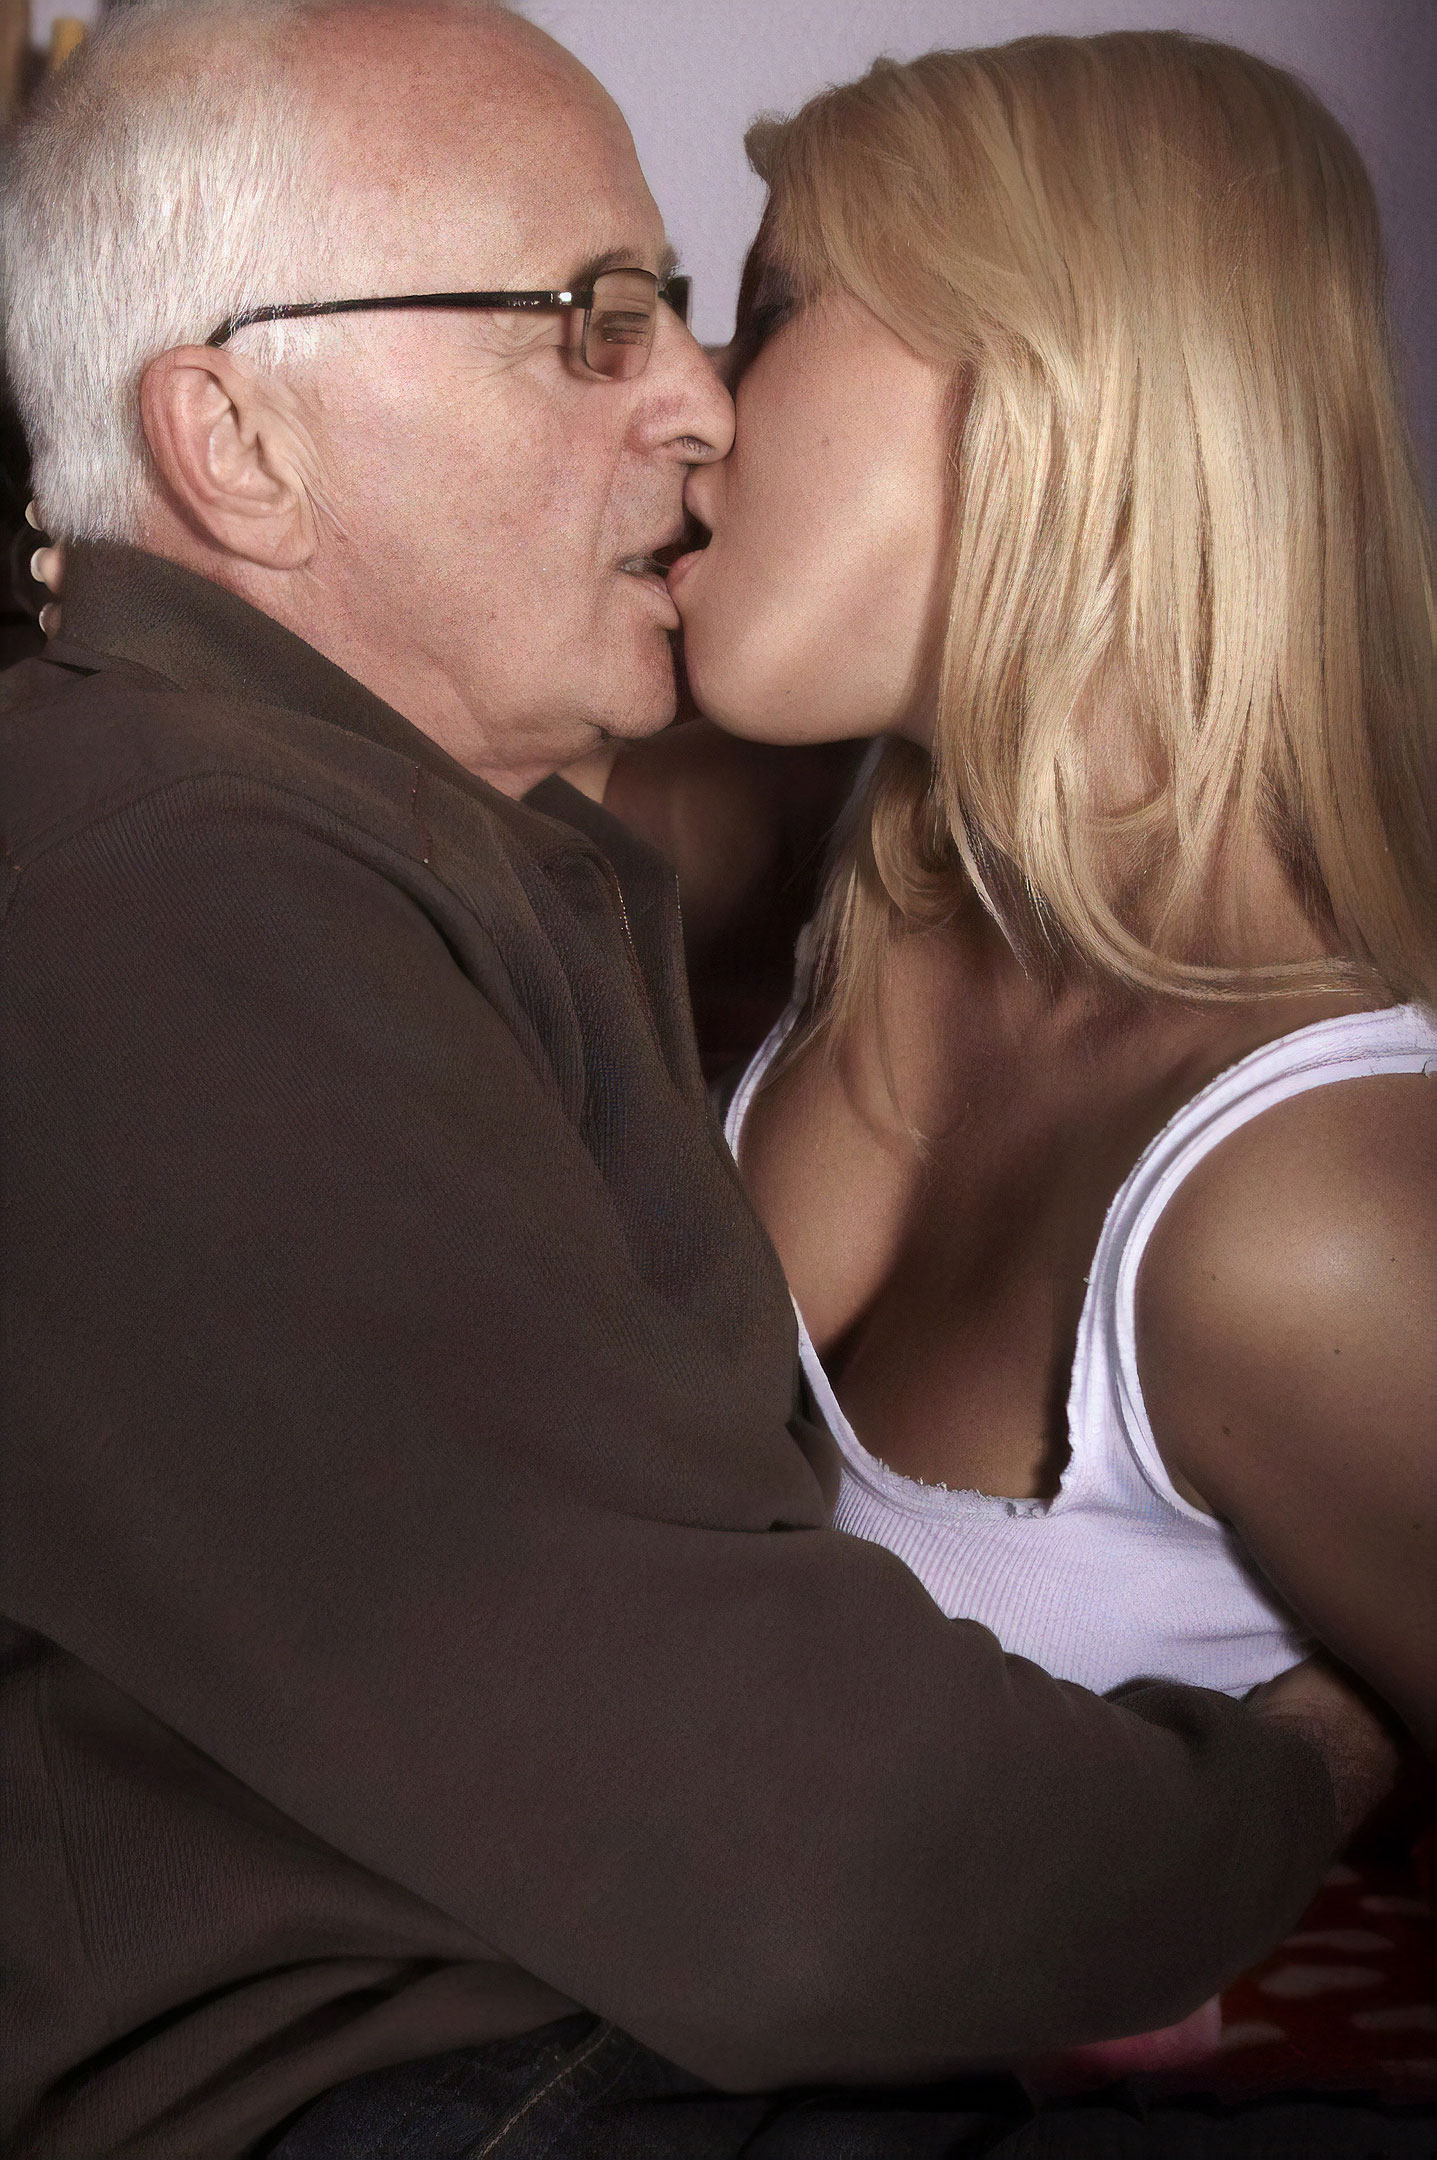 old-kissing-young-girls